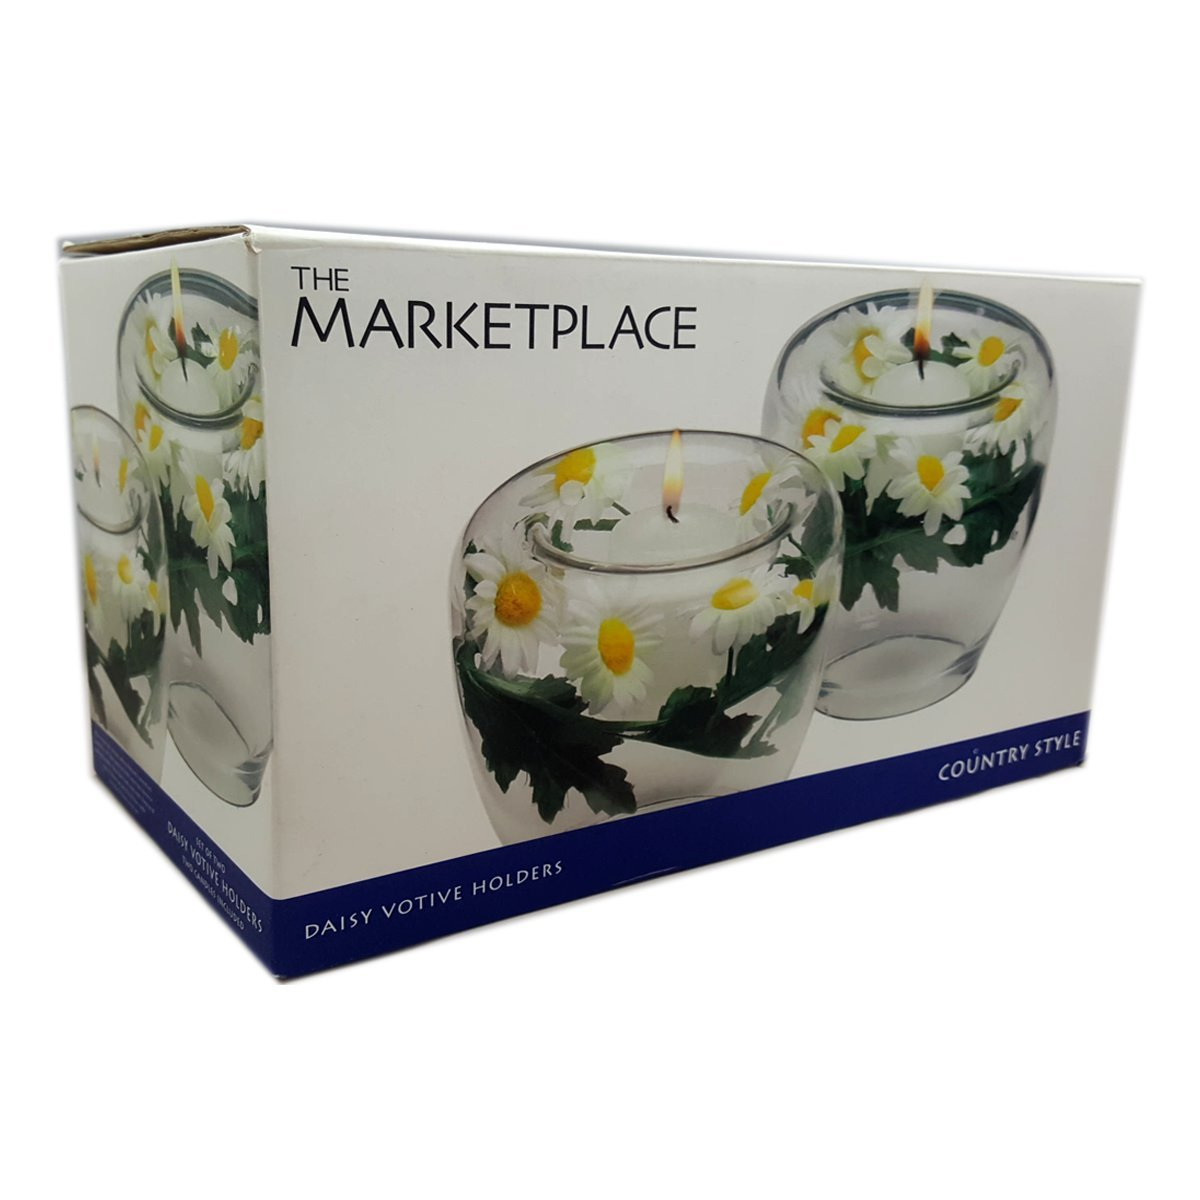 The Marketplace Country Style Daisy Votive Holders Set of Two (Candles Included)